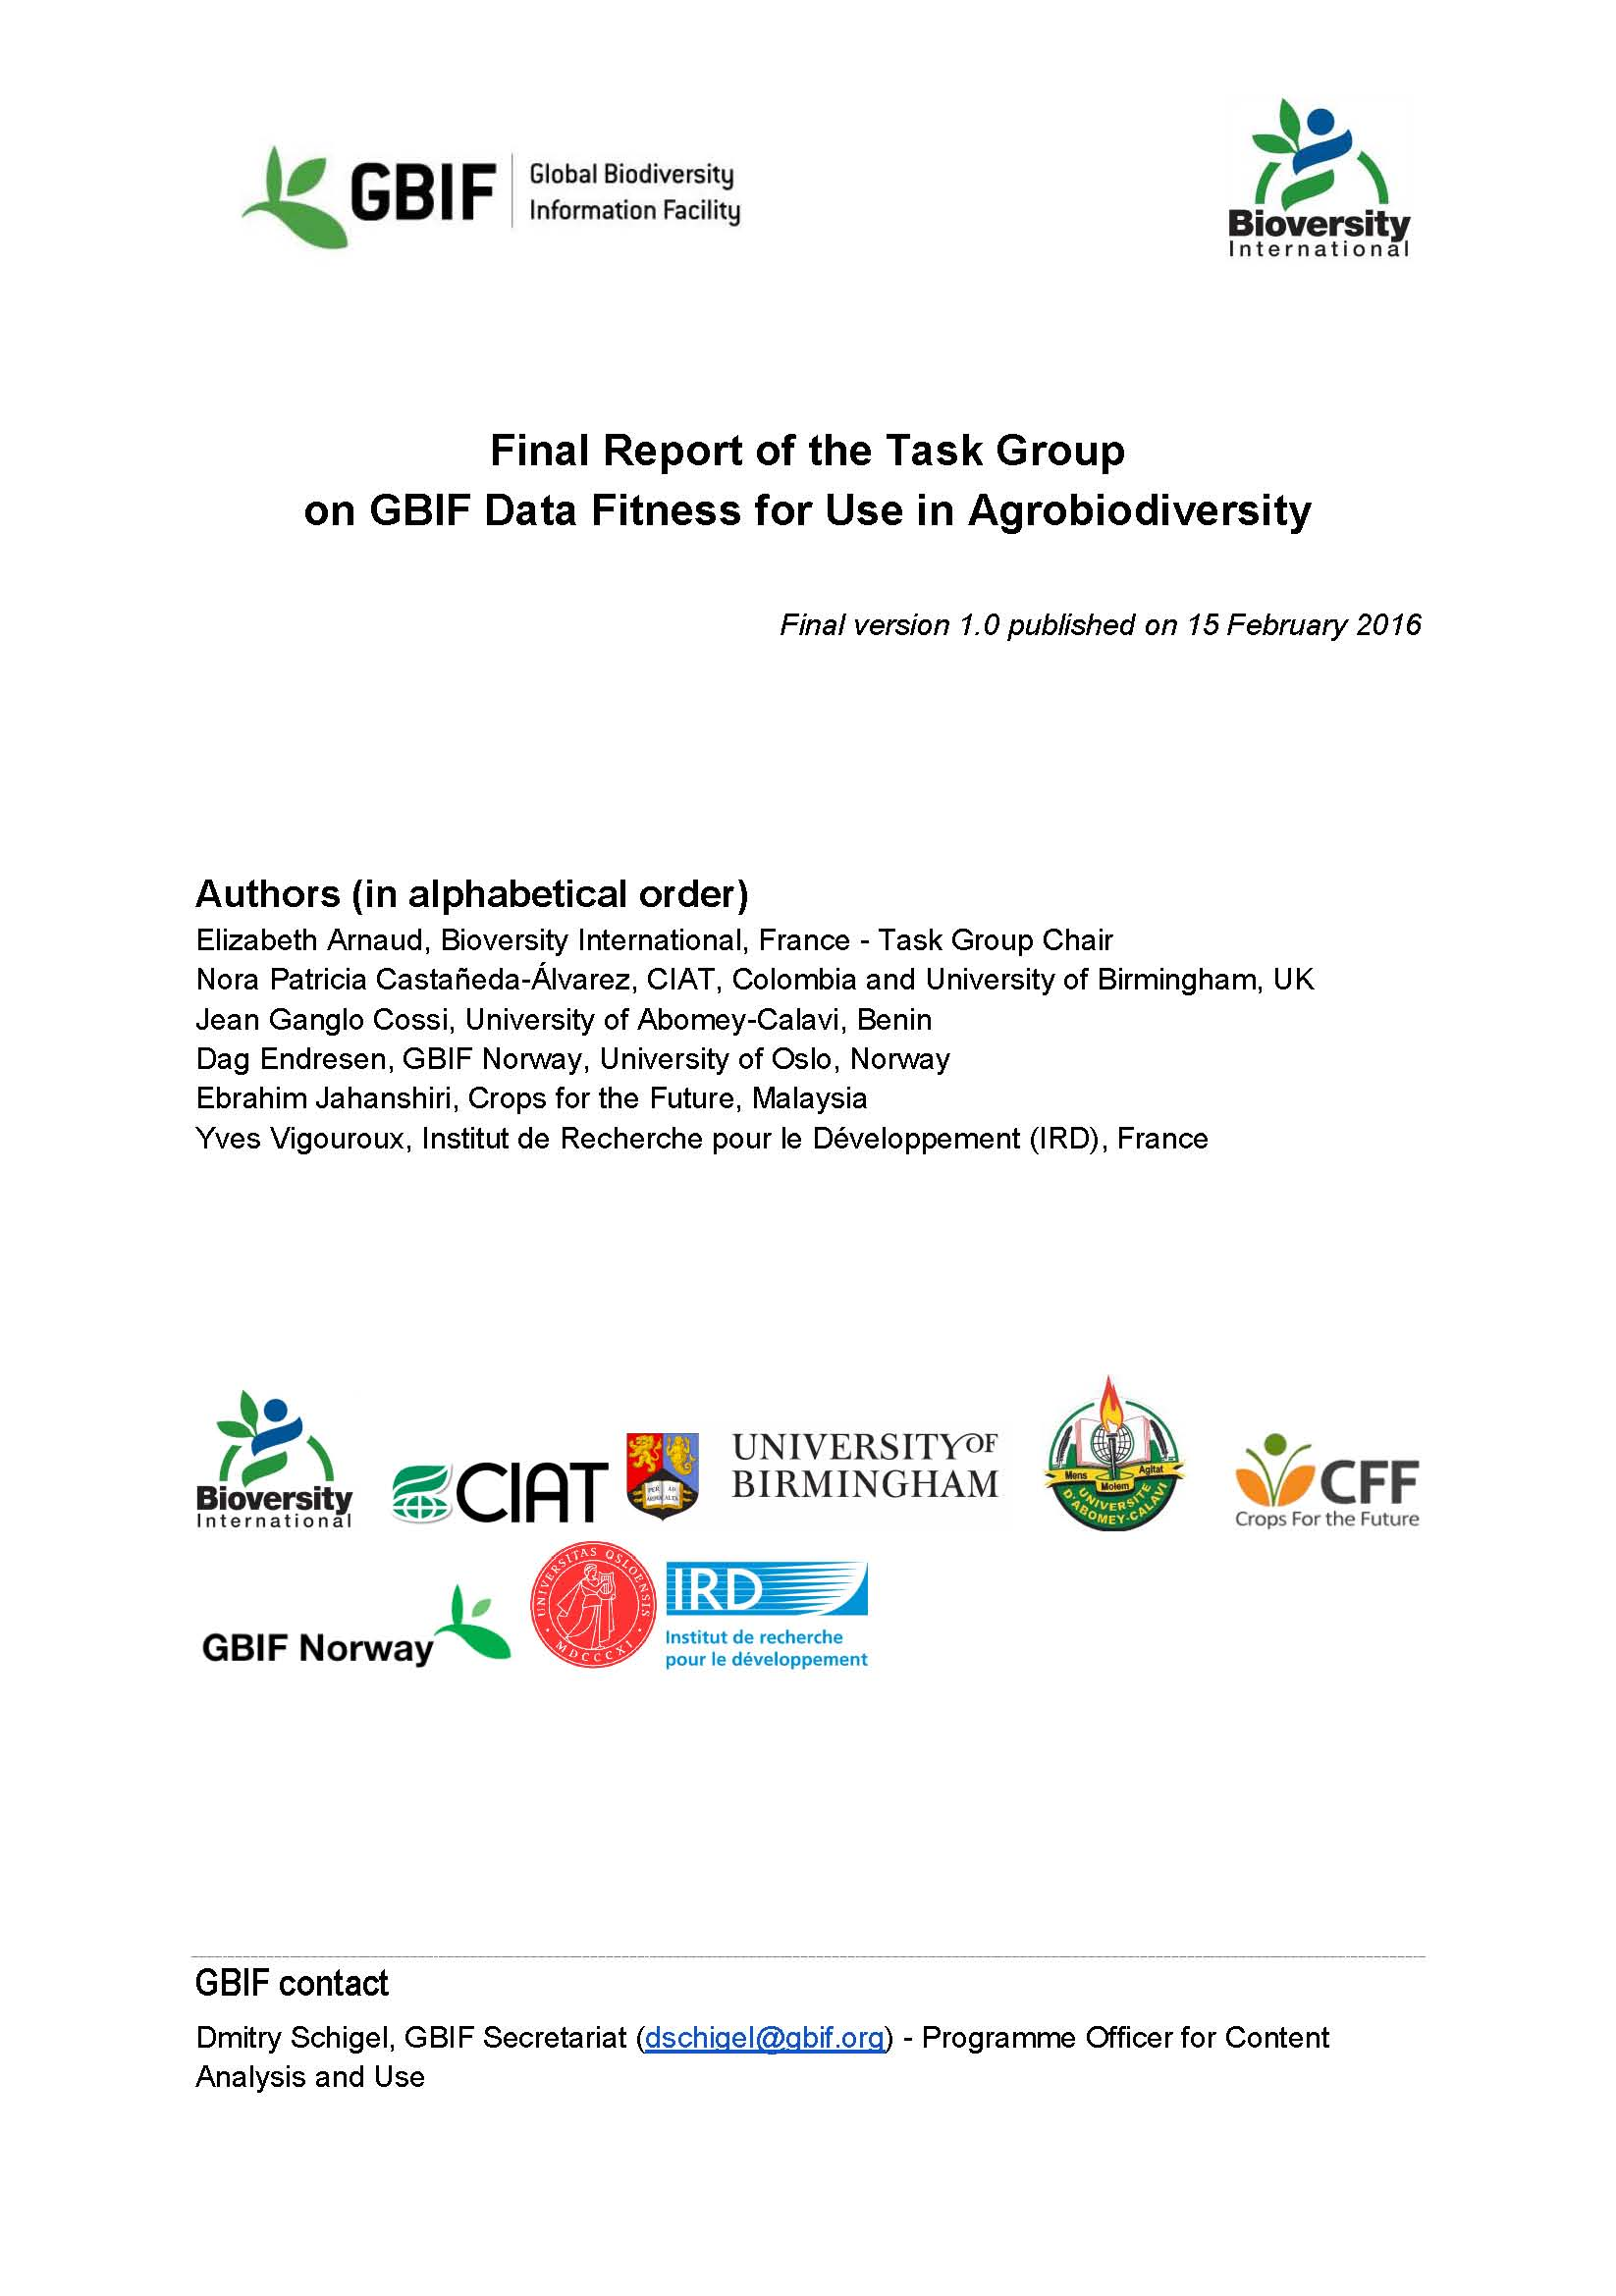 Report of the Task Group on GBIF Data Fitness for Use in Agrobiodiversity